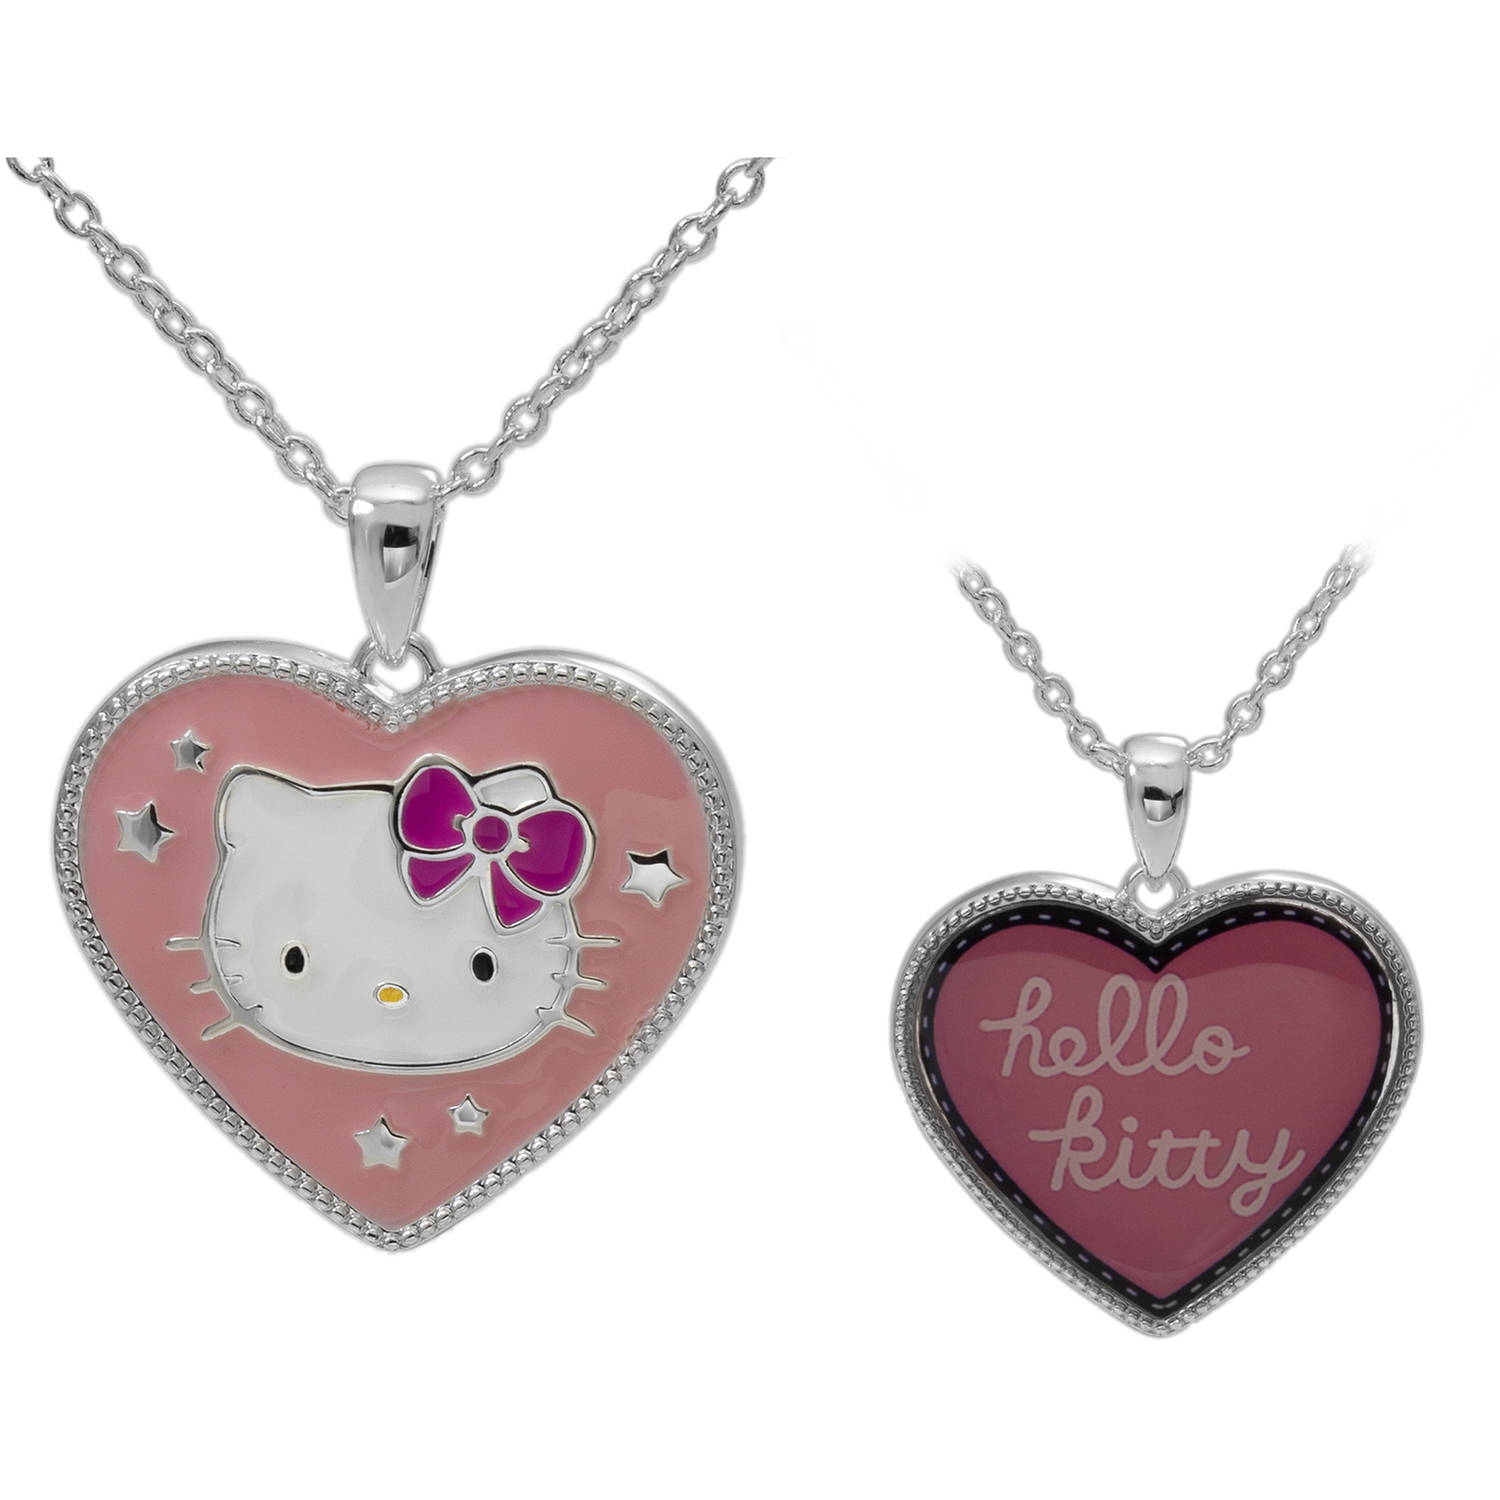 "Hello Kitty Silver-Plated Reversible Pendant, 18"" chain"